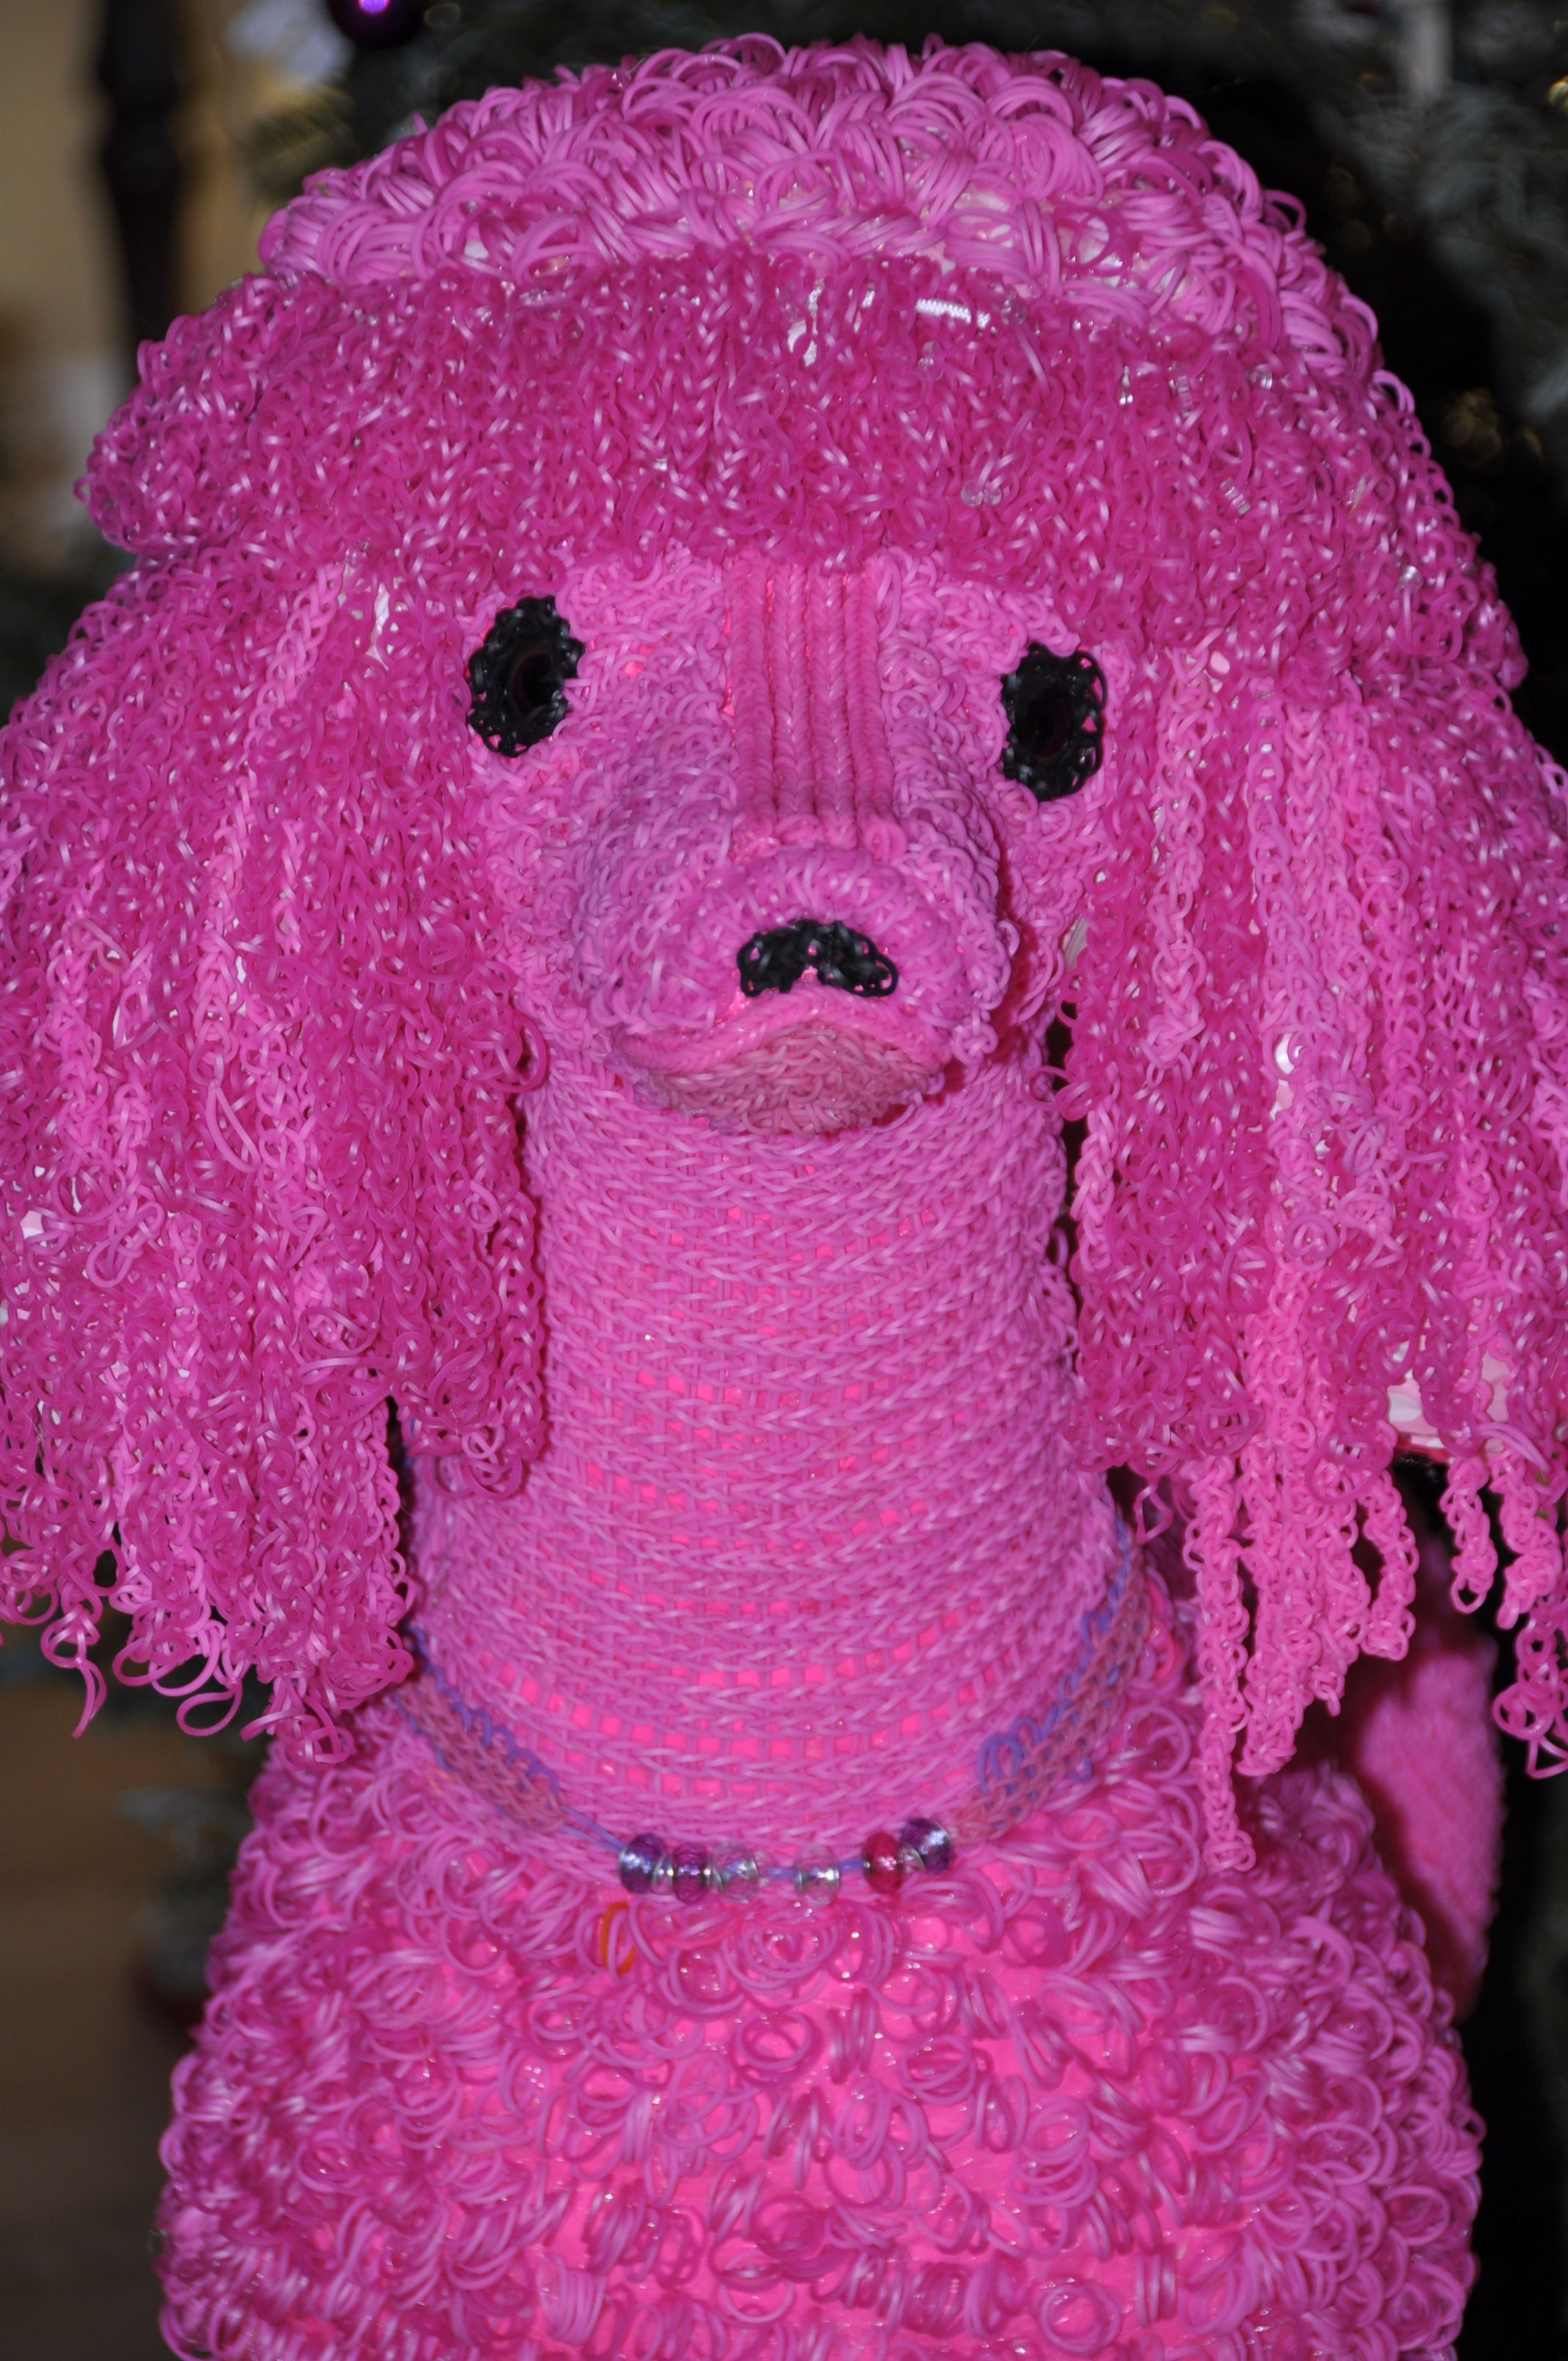 Like The Rubberband Craze 4ft Pink Poodle Made With Rubber Bands